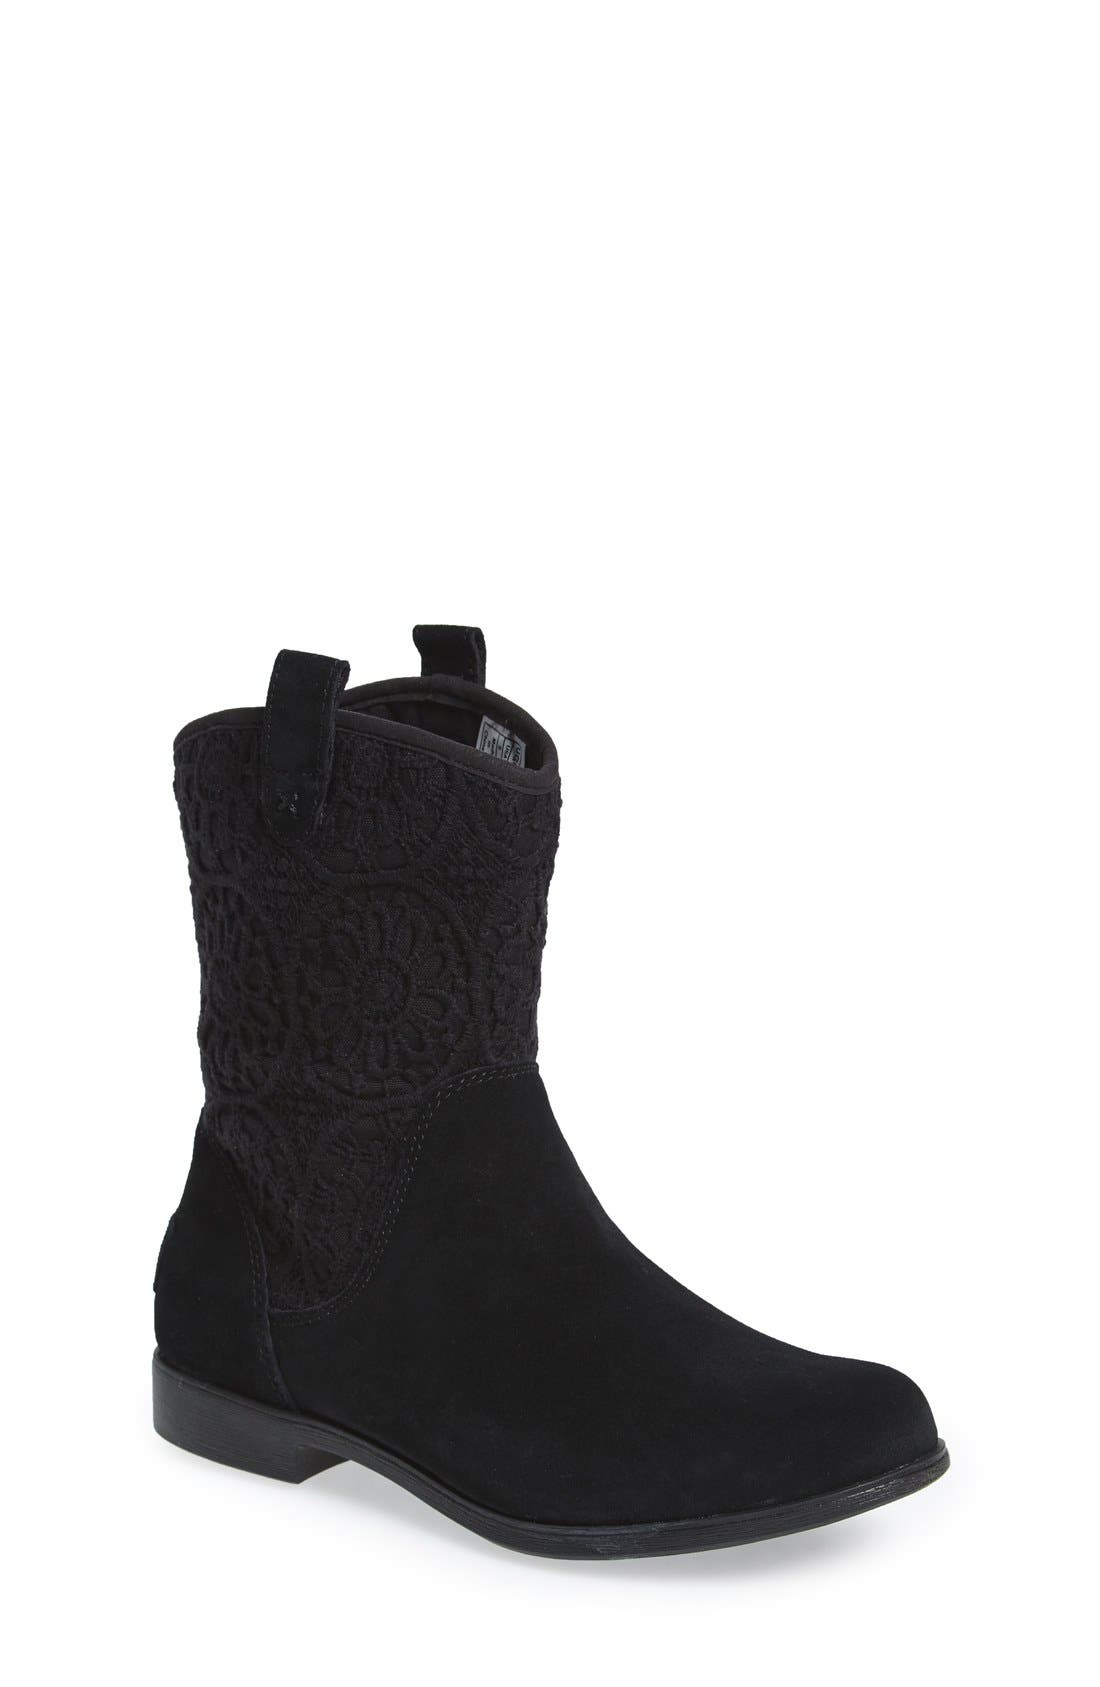 Main Image - UGG® 'Dahlia' Lace Trimmed Boot (Little Kid & Big Kid)